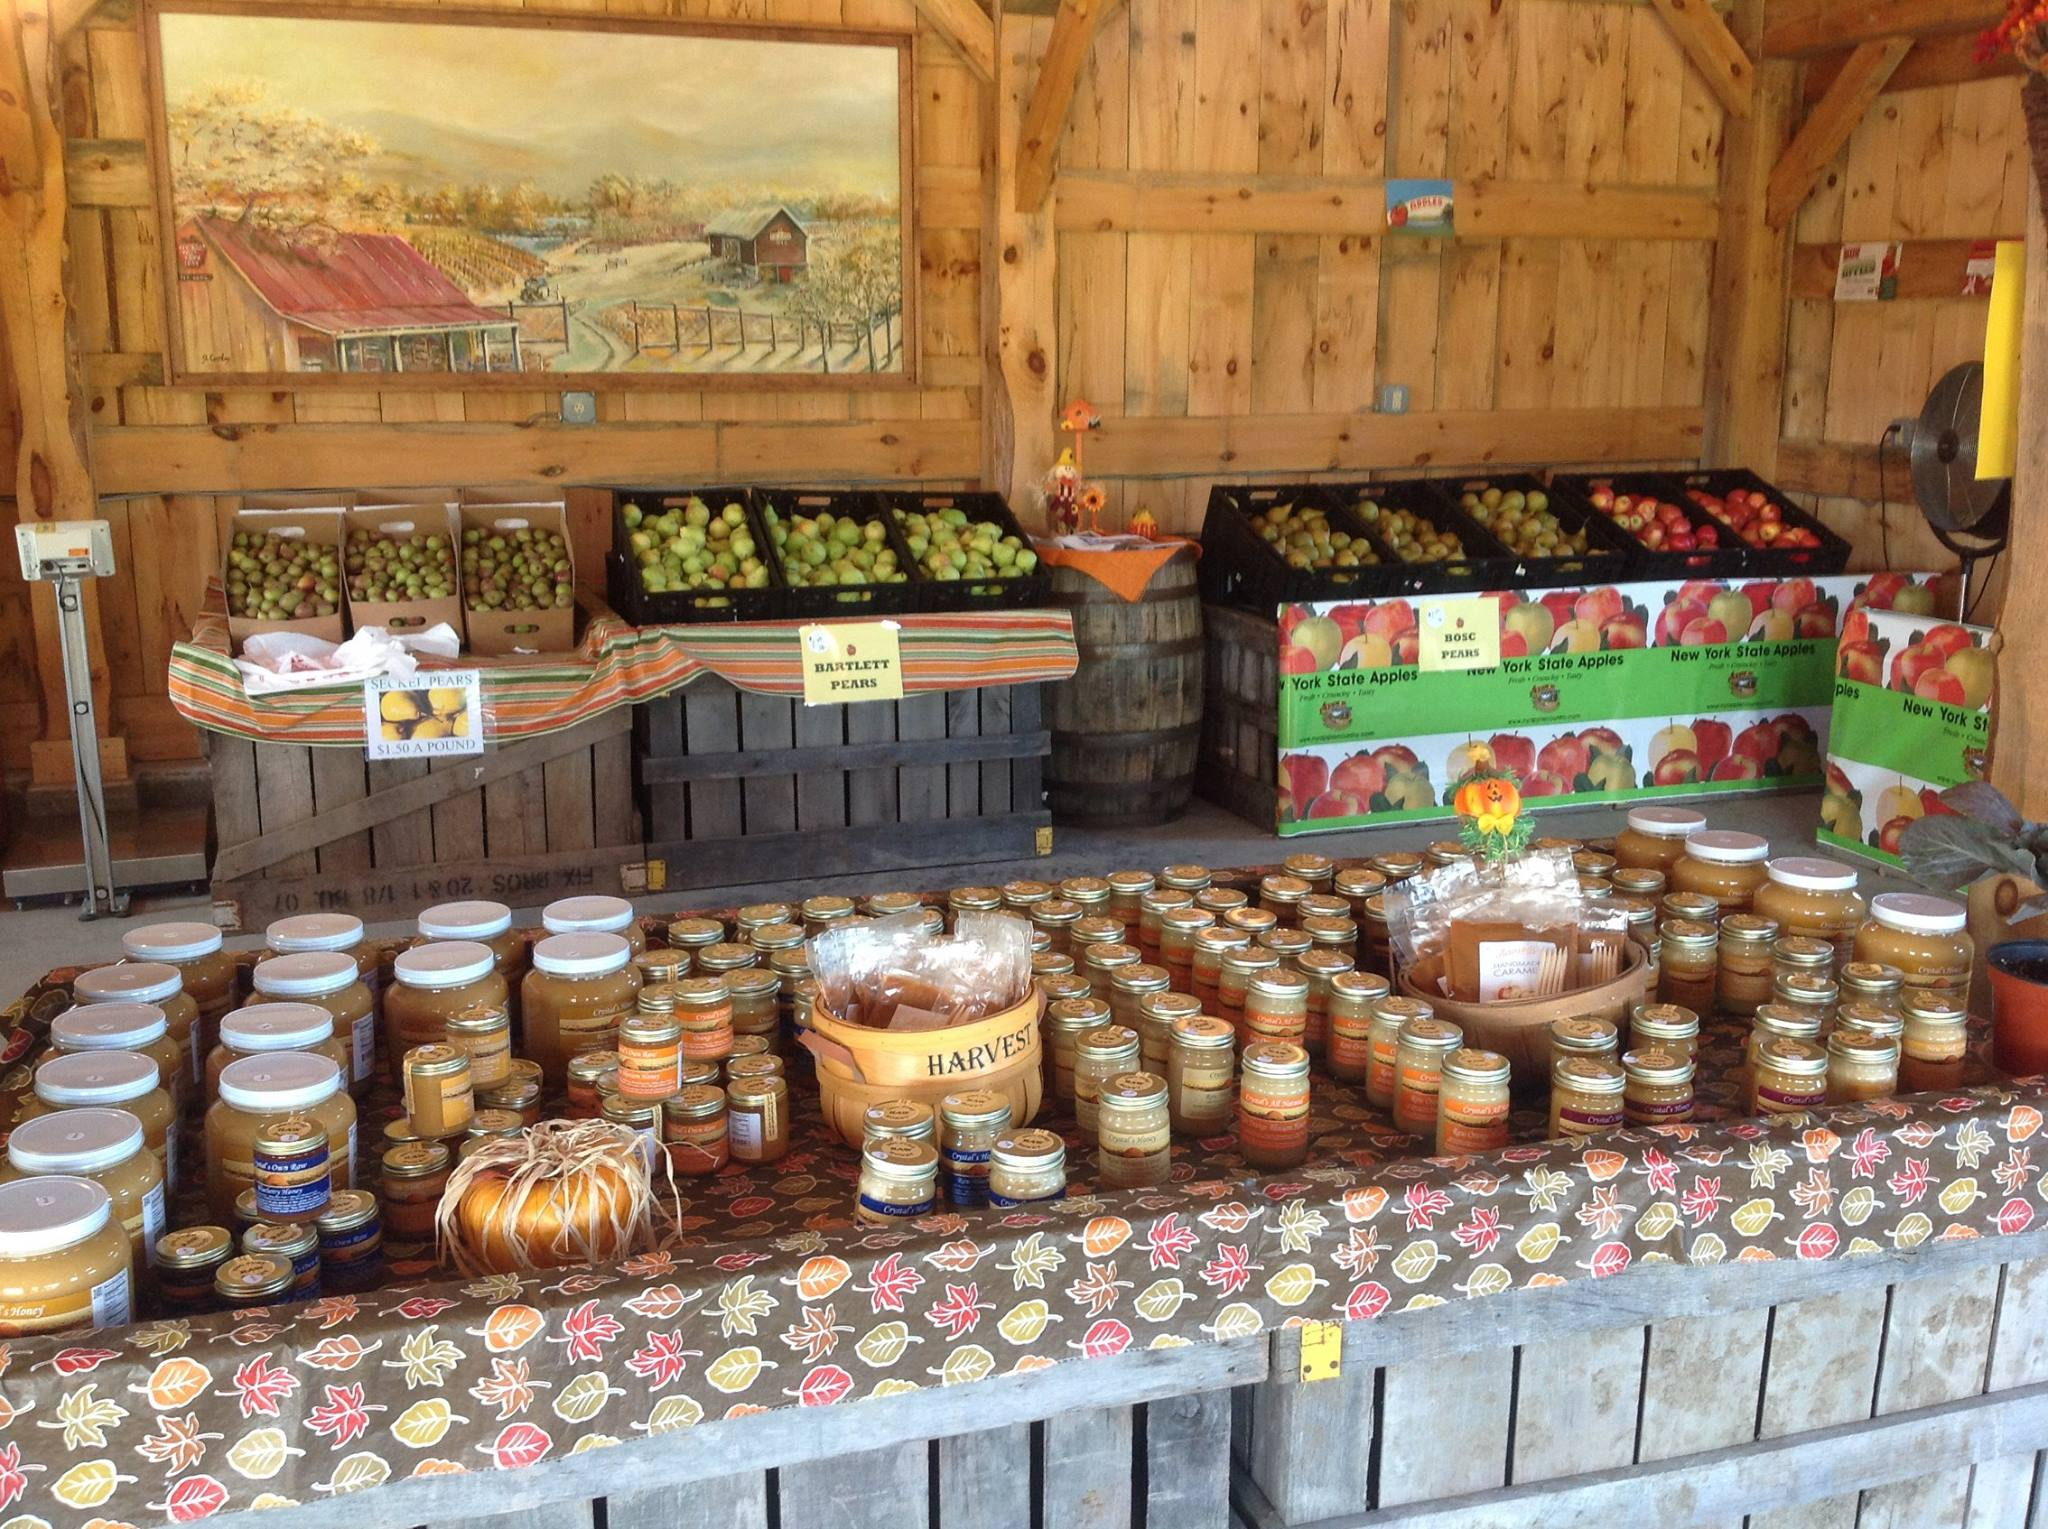 Display of Pears, Apples and Honey in the Pick Your Own Apple barn at Fix Bros. Fruit Farm, Hudson, New York